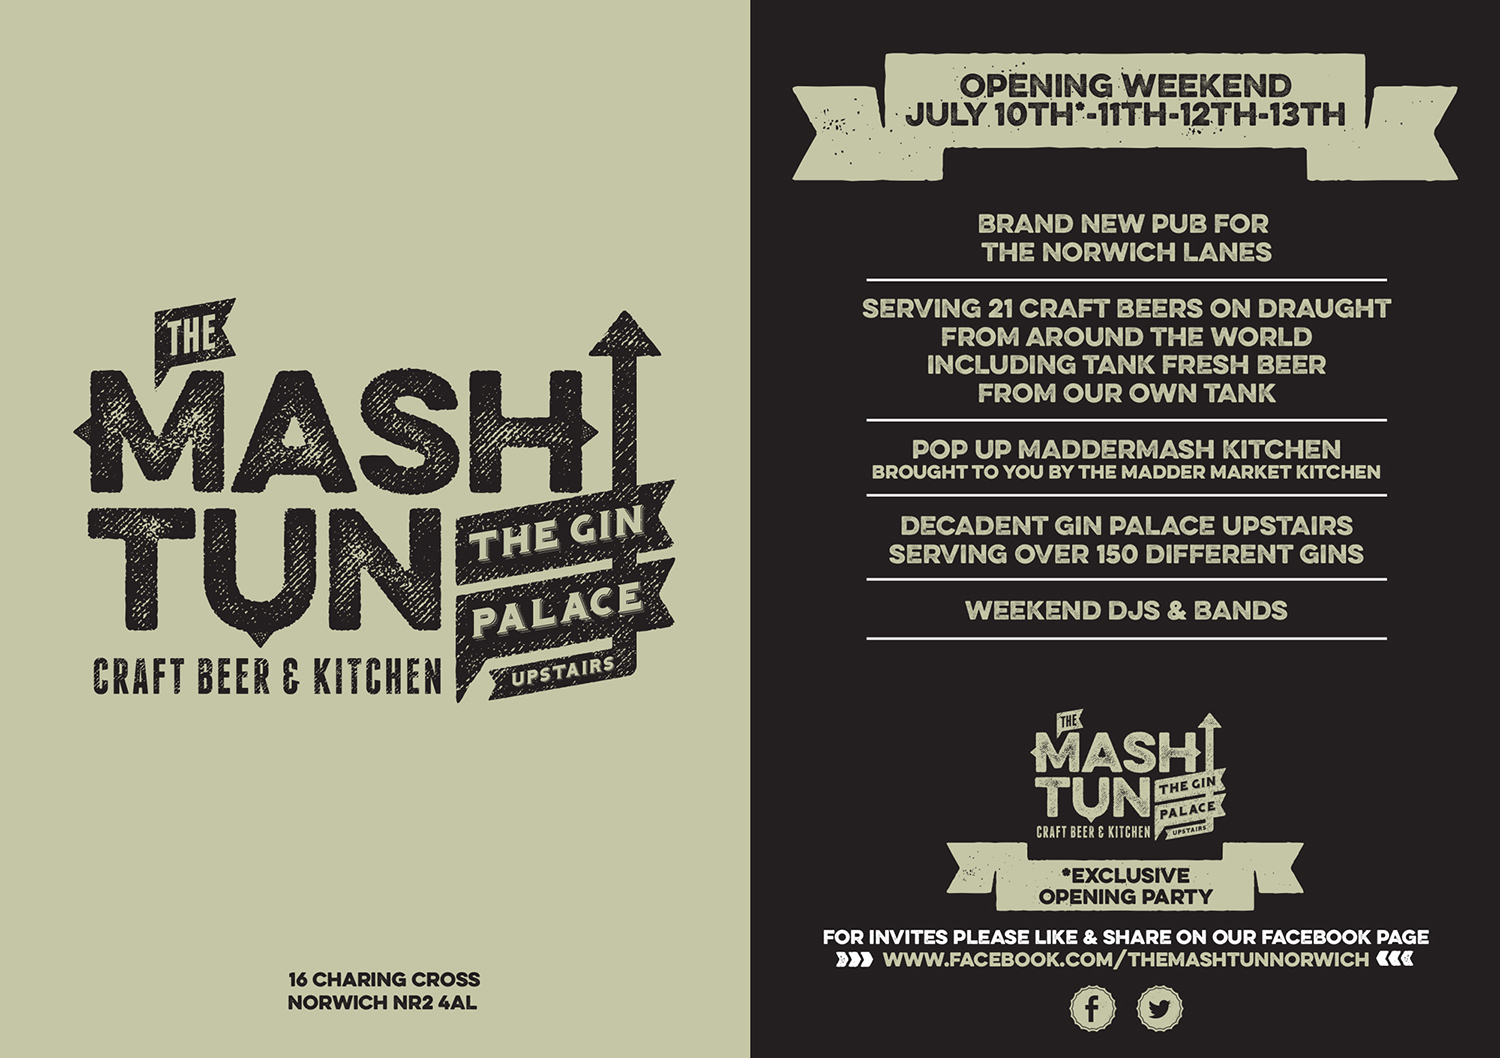 mash-tun-norwich-flyer-design-graphics-advertising-craft-beer-pub.jpg